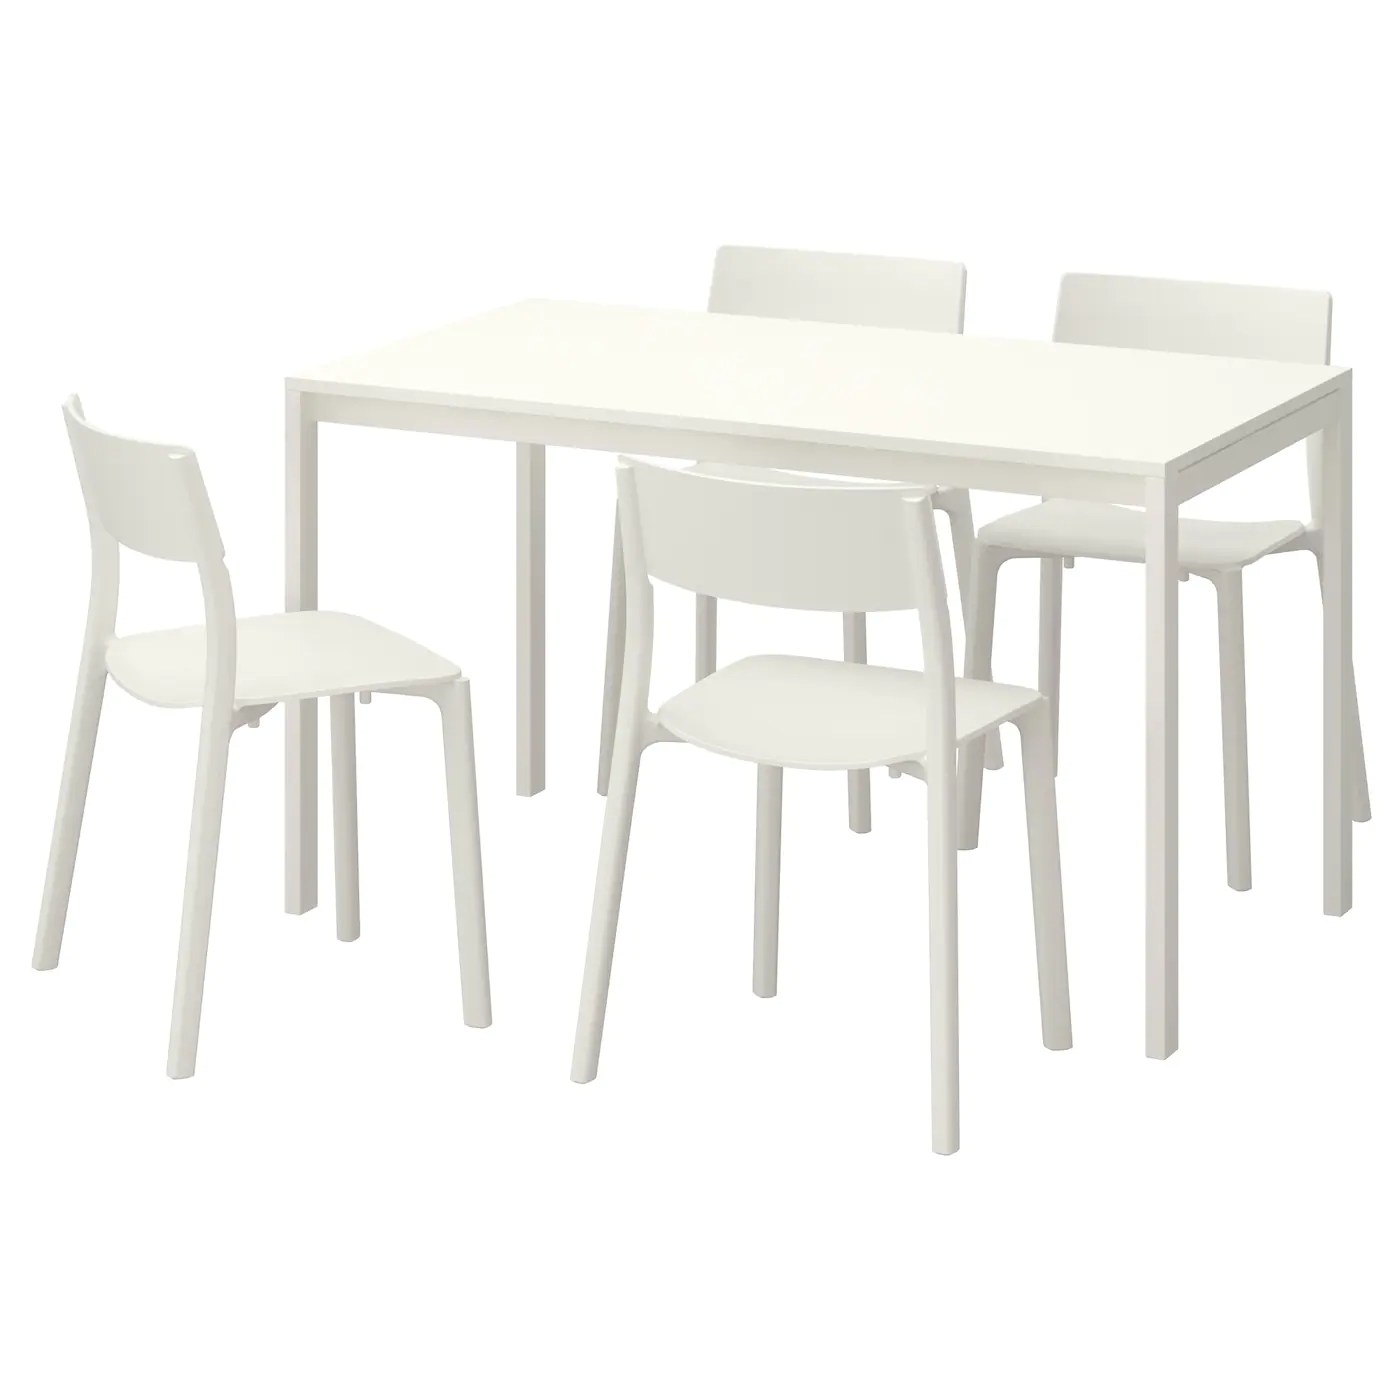 white table chairs zero gravity patio chair target dining sets room ikea melltorp janinge and 4